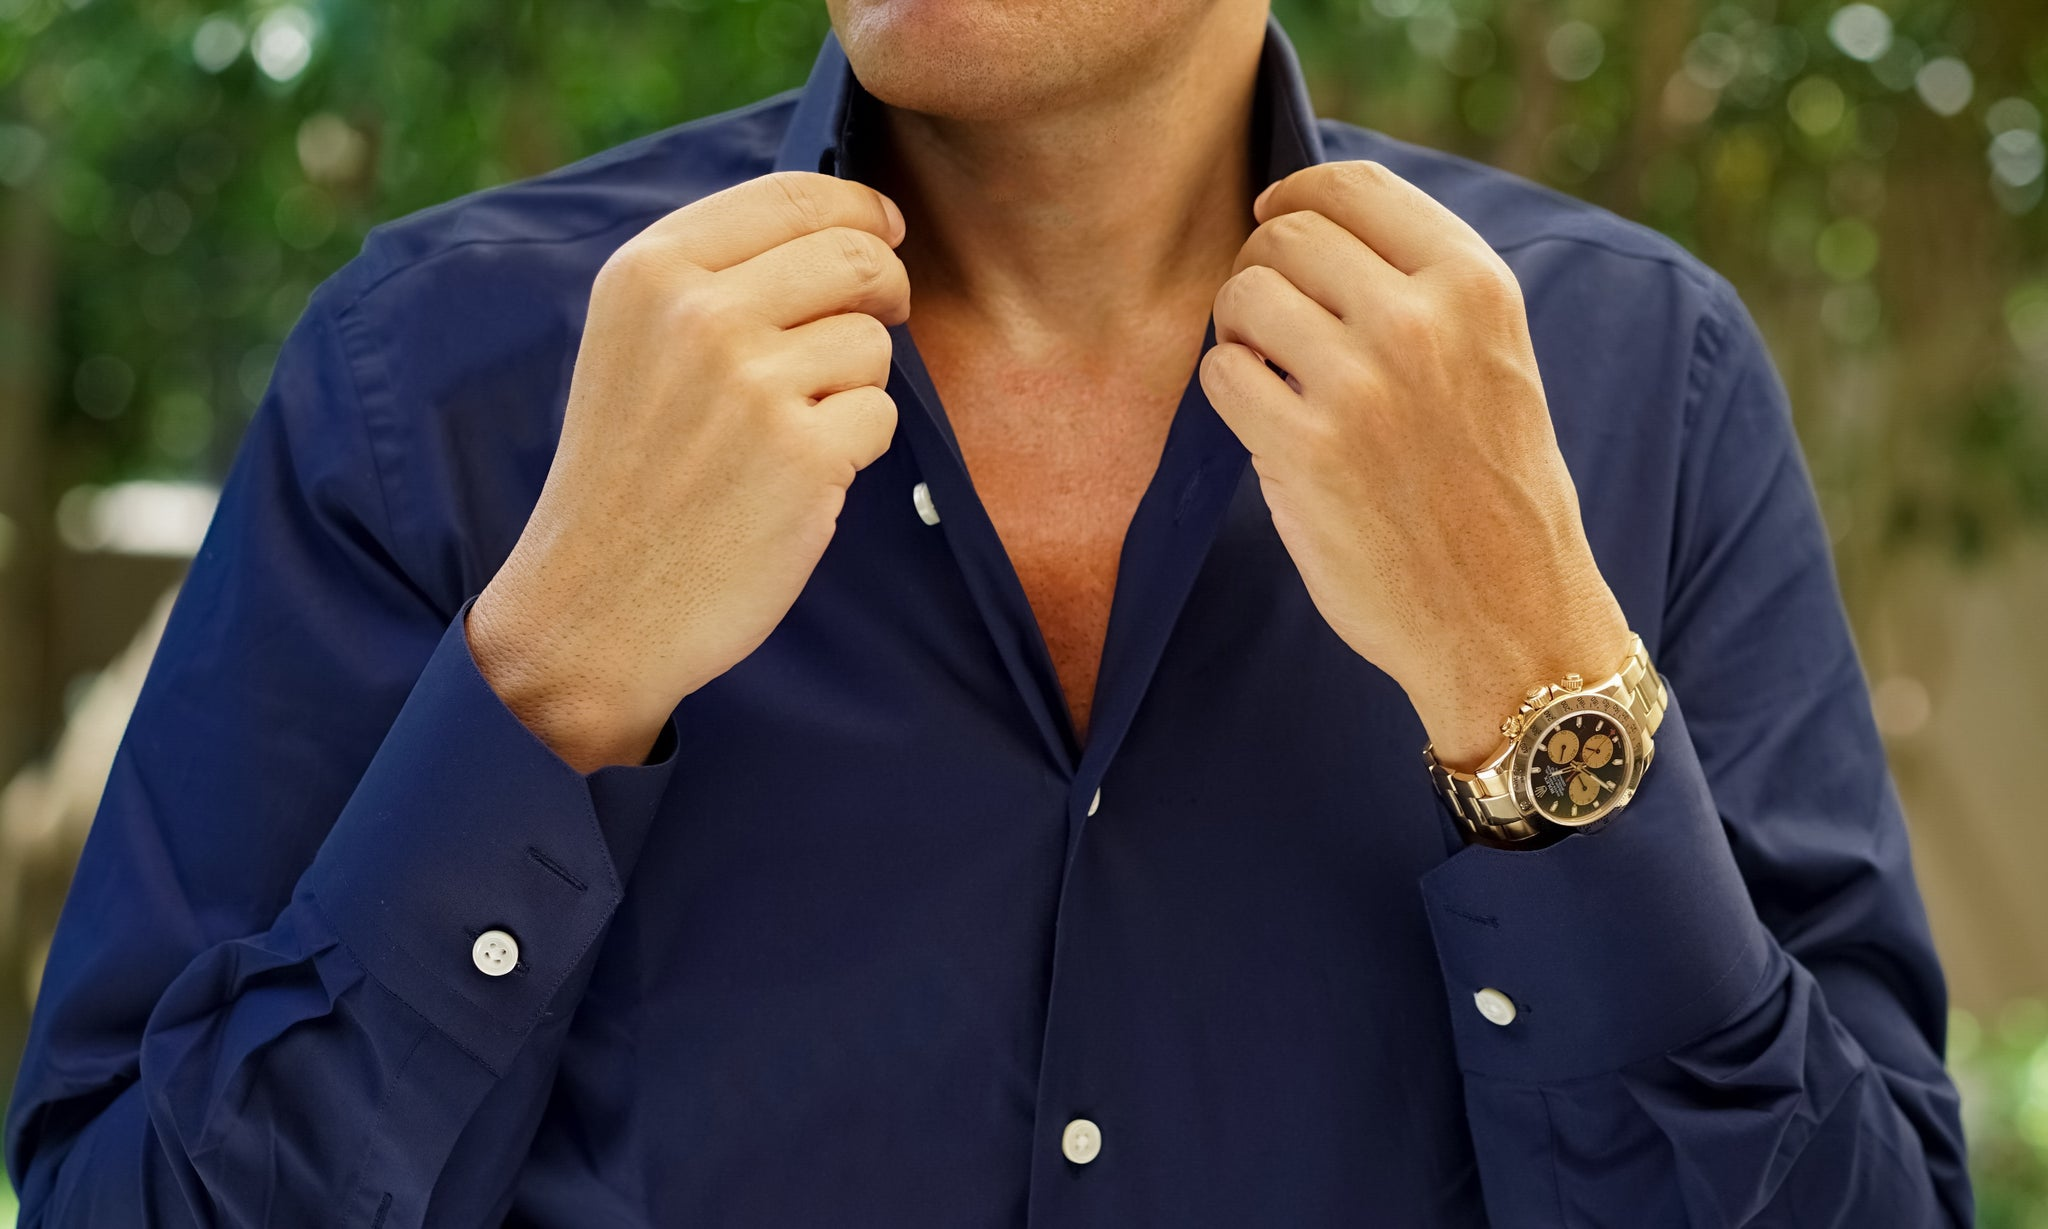 Danielre Timeless Navy Shirt